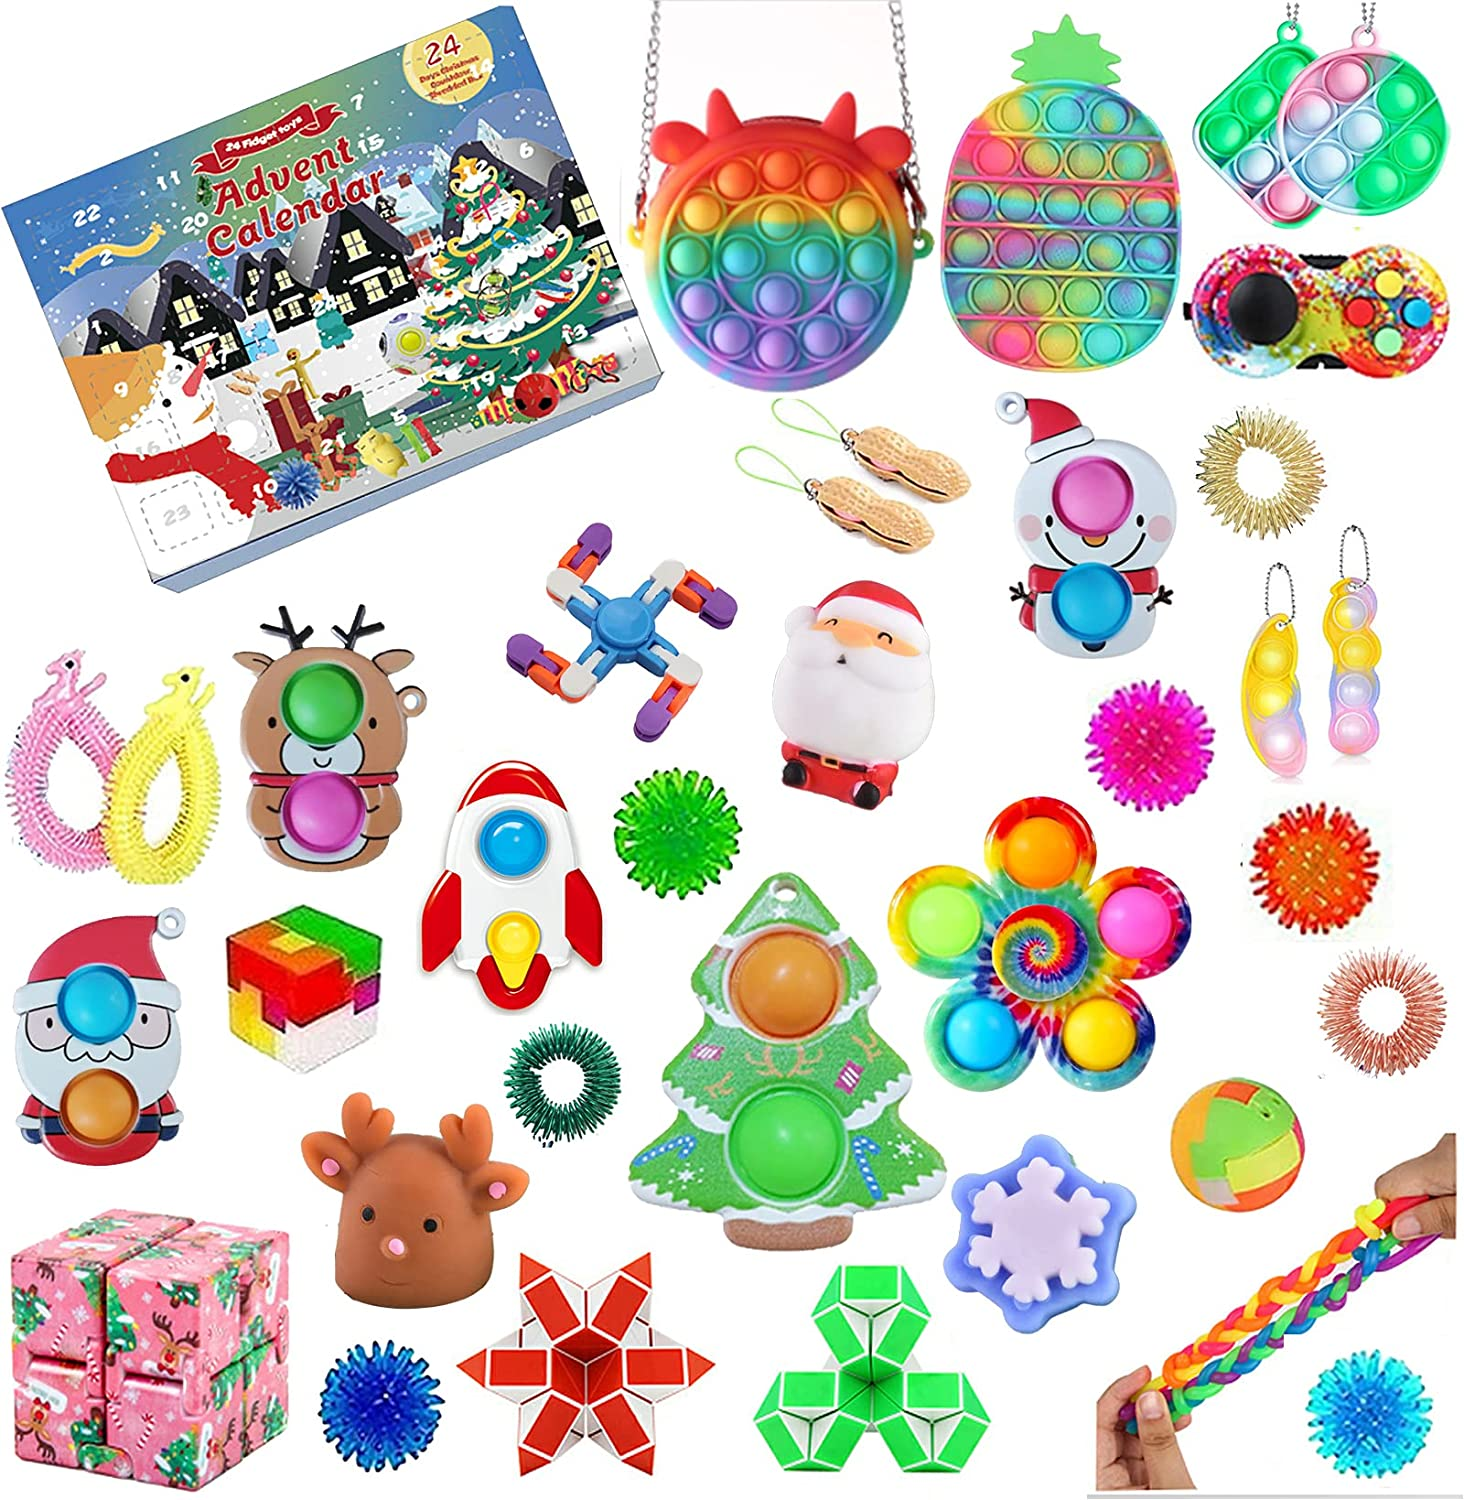 PXIAOPANG Sale Special Price Cheap mail order specialty store 40pcs Fidget Advent Calendar Packs Christmas 2021 Toy